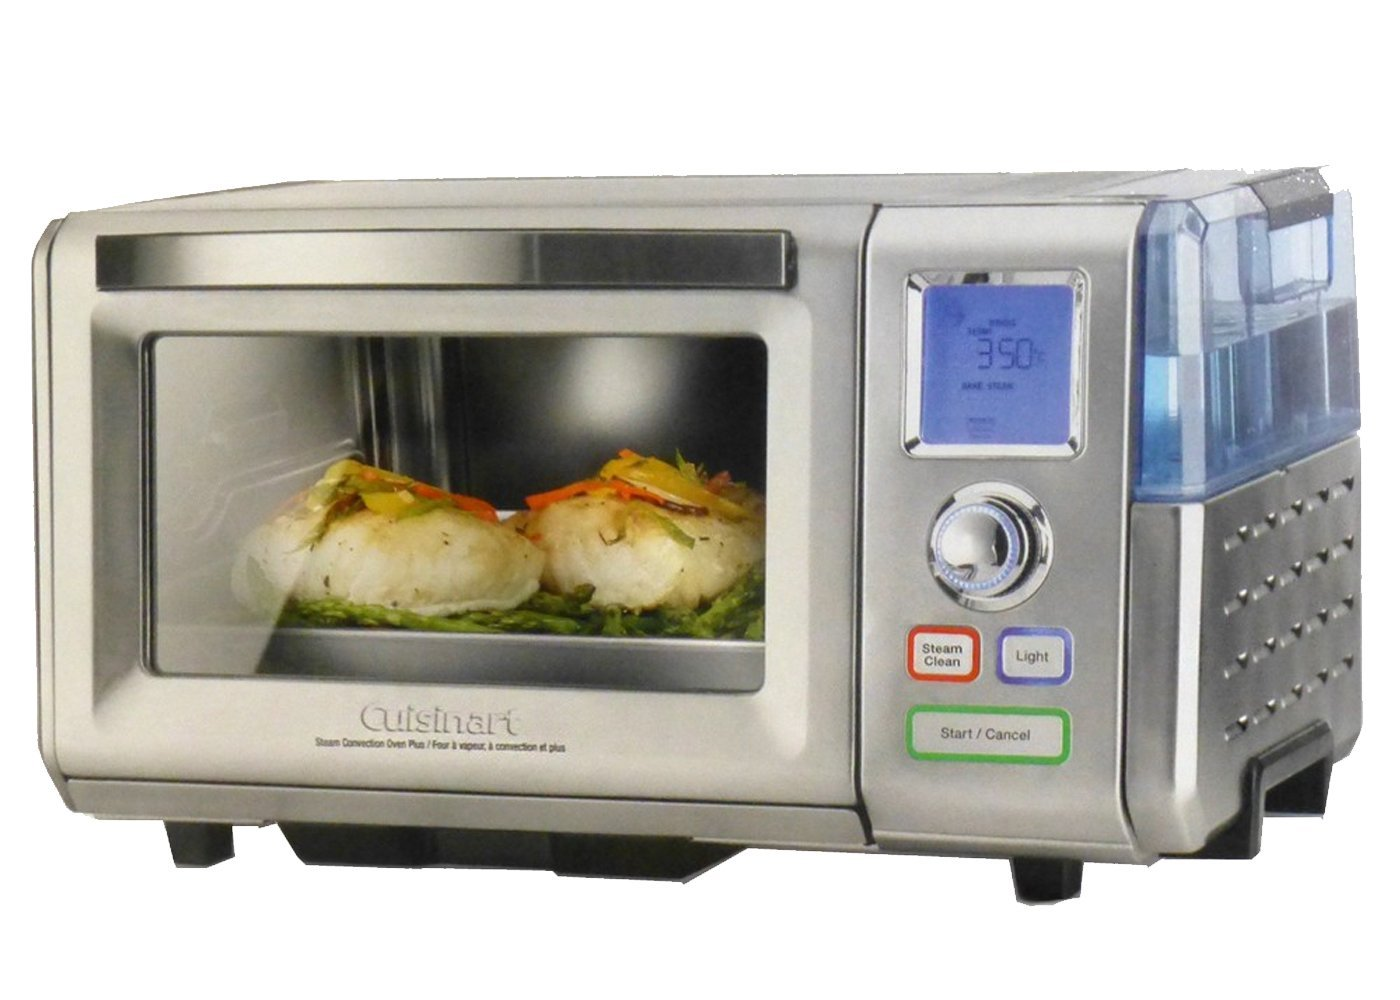 Cuisinart Cso 300n Combo Steam Convection Oven Review